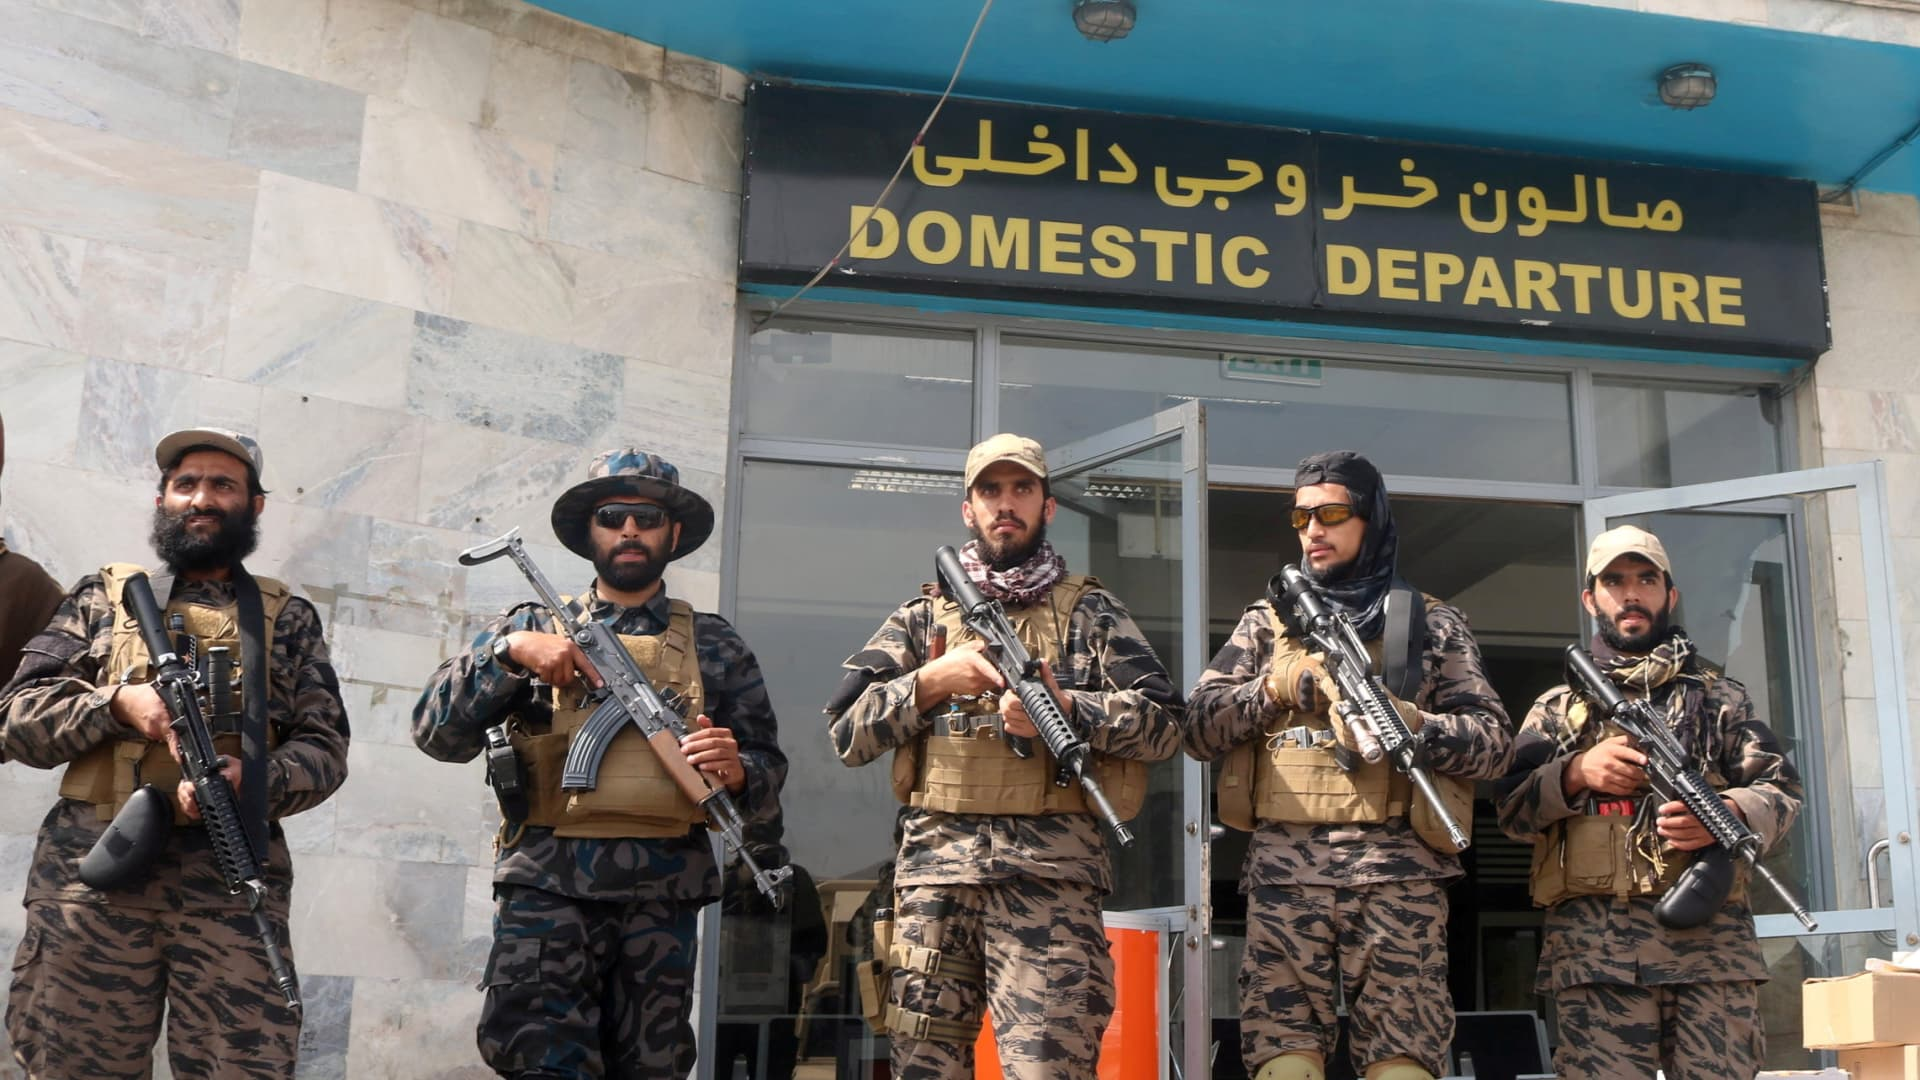 Taliban forces stand guard a day after the U.S. troops withdrawal from Hamid Karzai International Airport in Kabul, Afghanistan August 31, 2021.